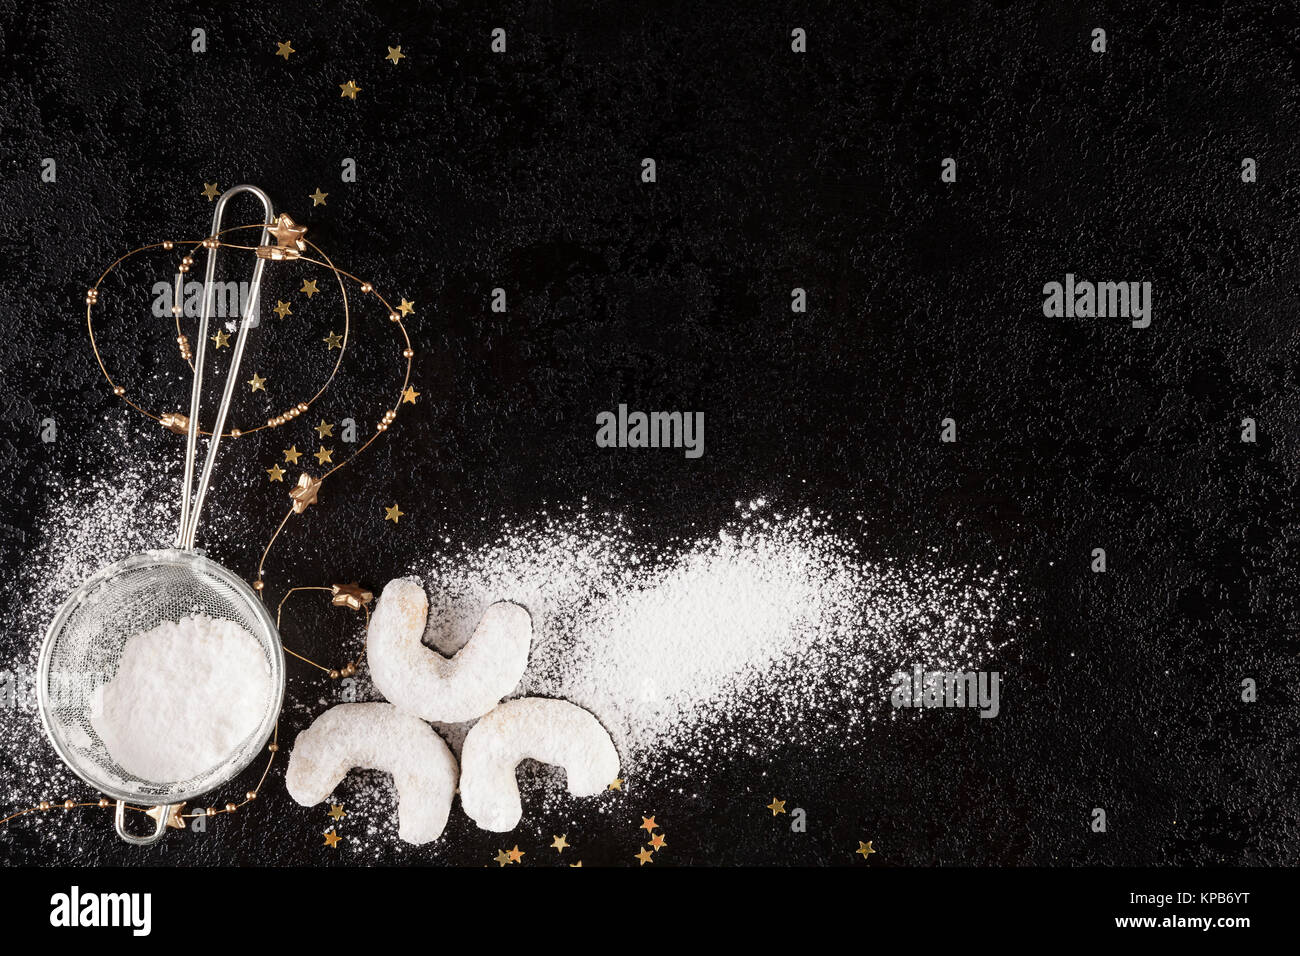 Sifter with spilled sugar with Christmas Cookies from above on dark surface. - Stock Image